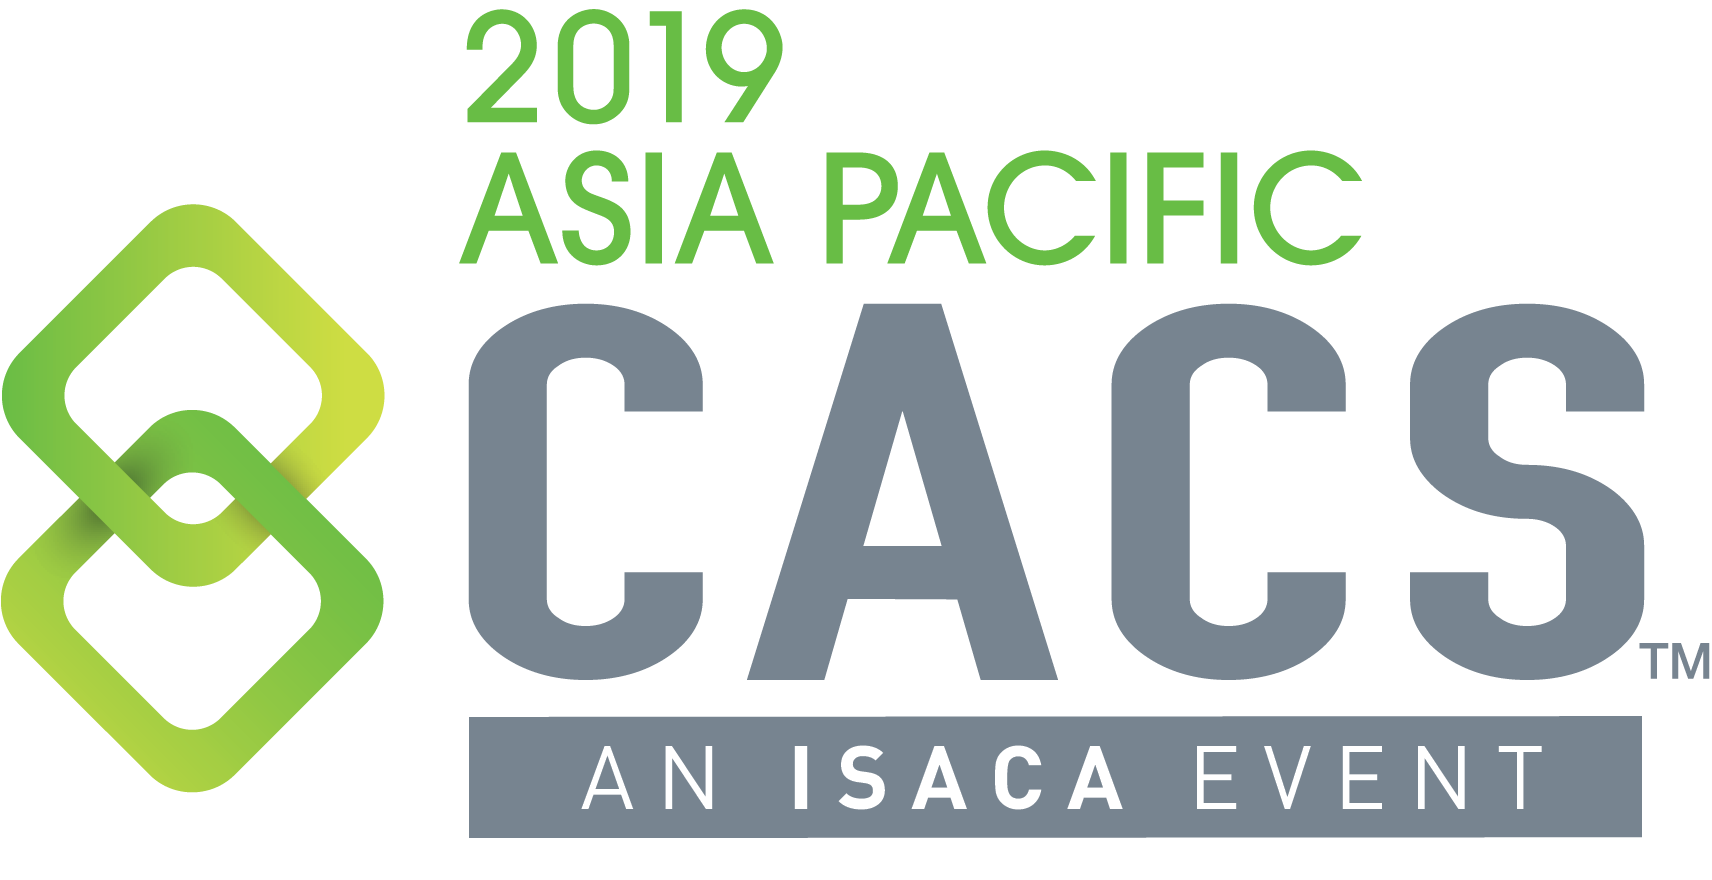 ISACA China Hong Kong Asia Pacific CACS Conference 2019